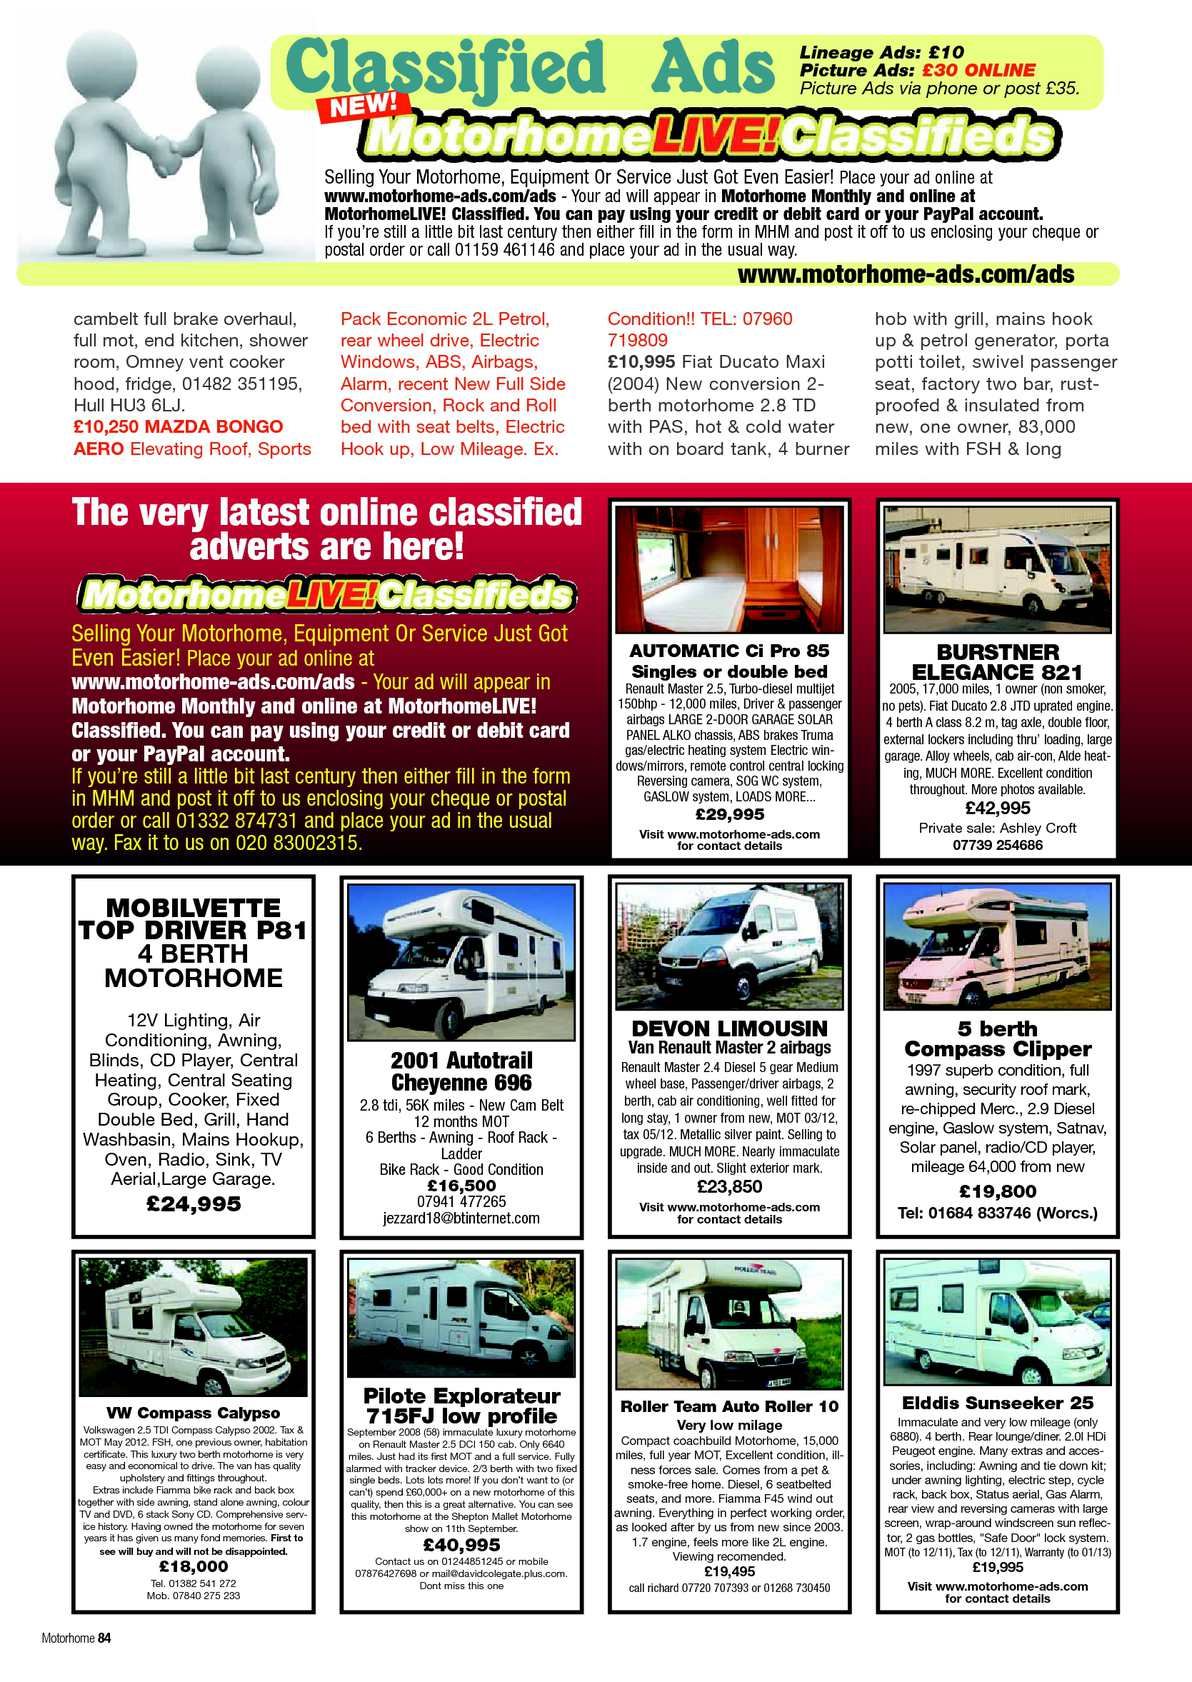 Feb 2012 Motorhome Monthly Magazine - CALAMEO Downloader